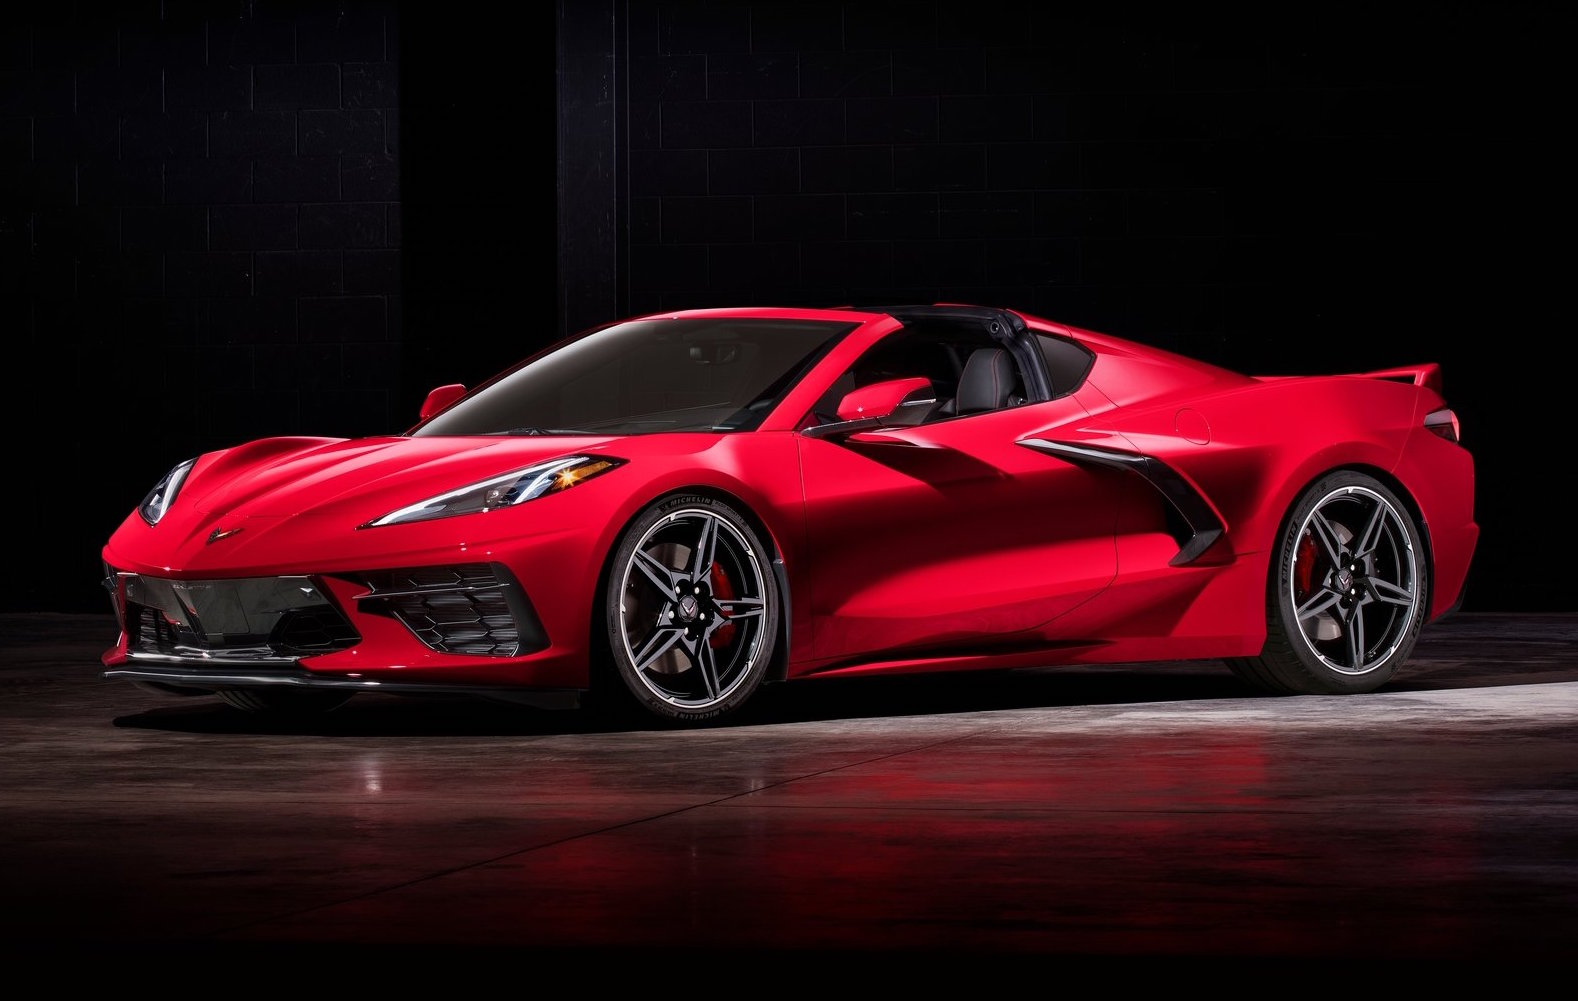 2020 Chevrolet Corvette Stingray C8 revealed, confirmed ...